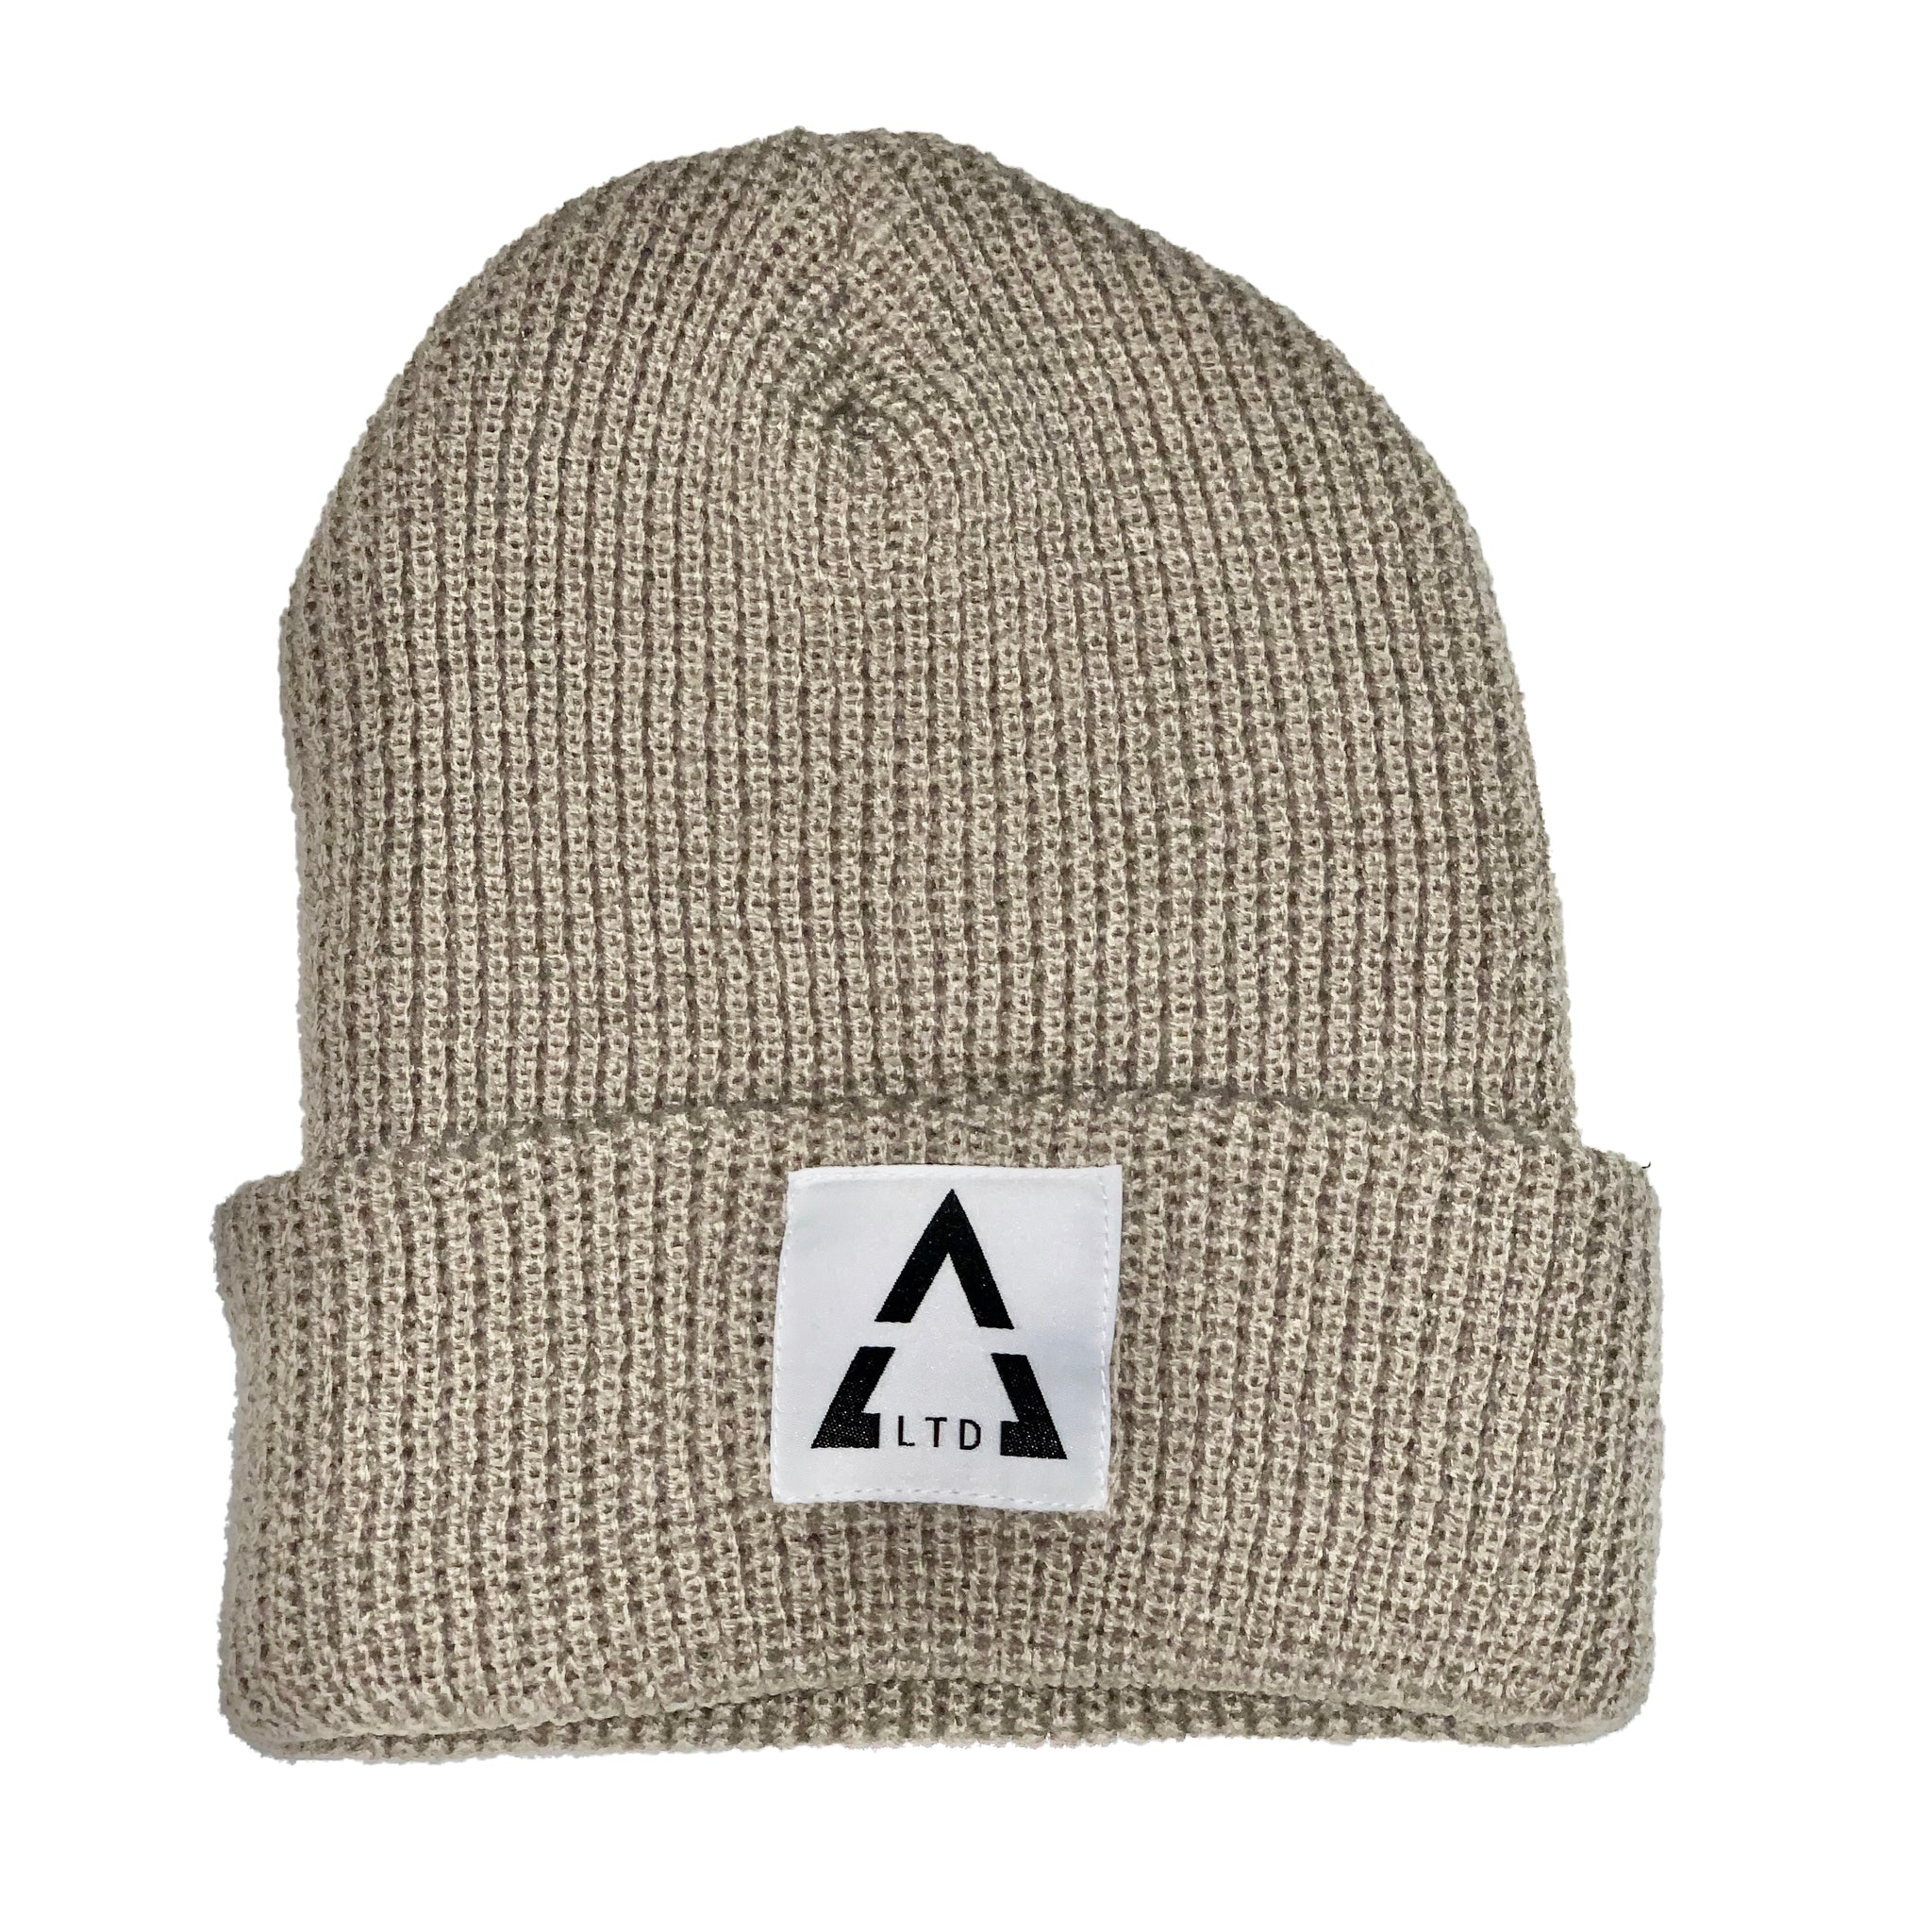 Apollo LTD Beige Beanie